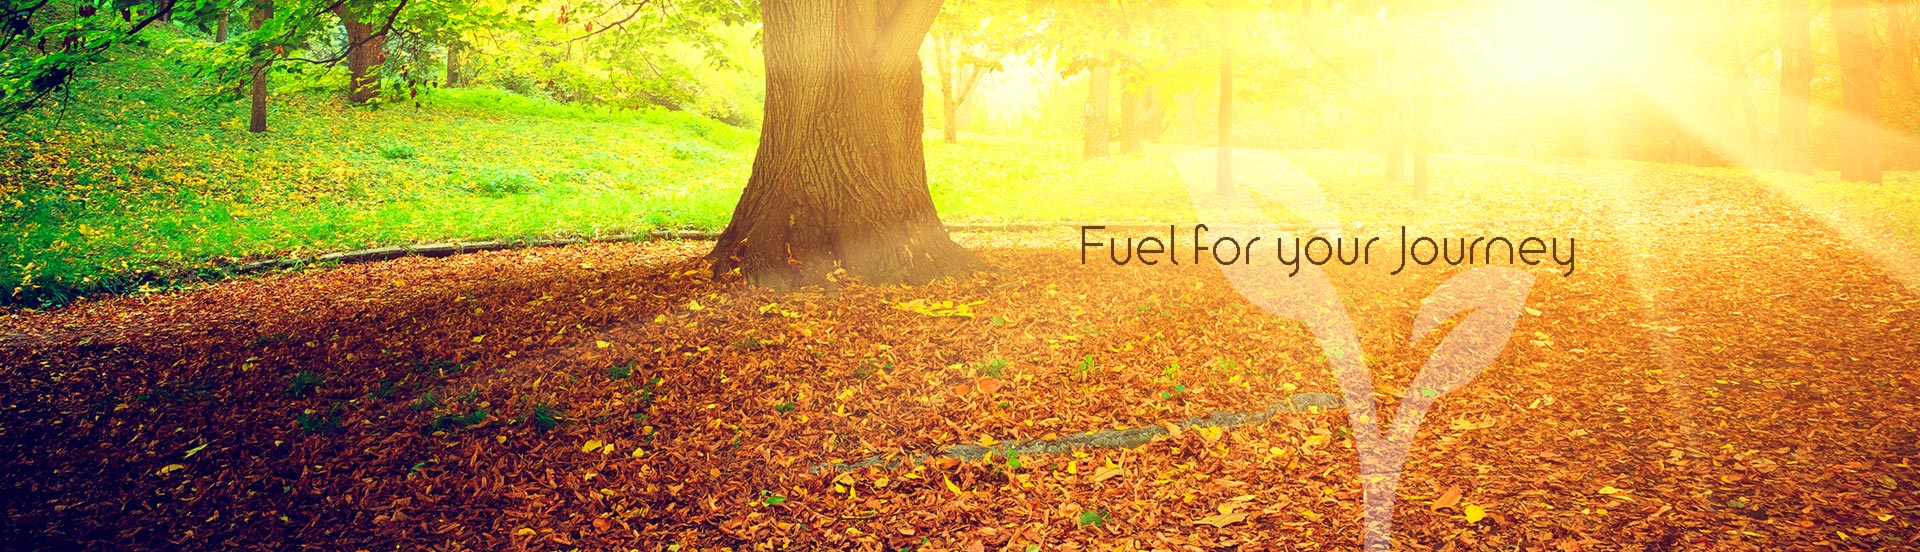 Fuel for Your Journey